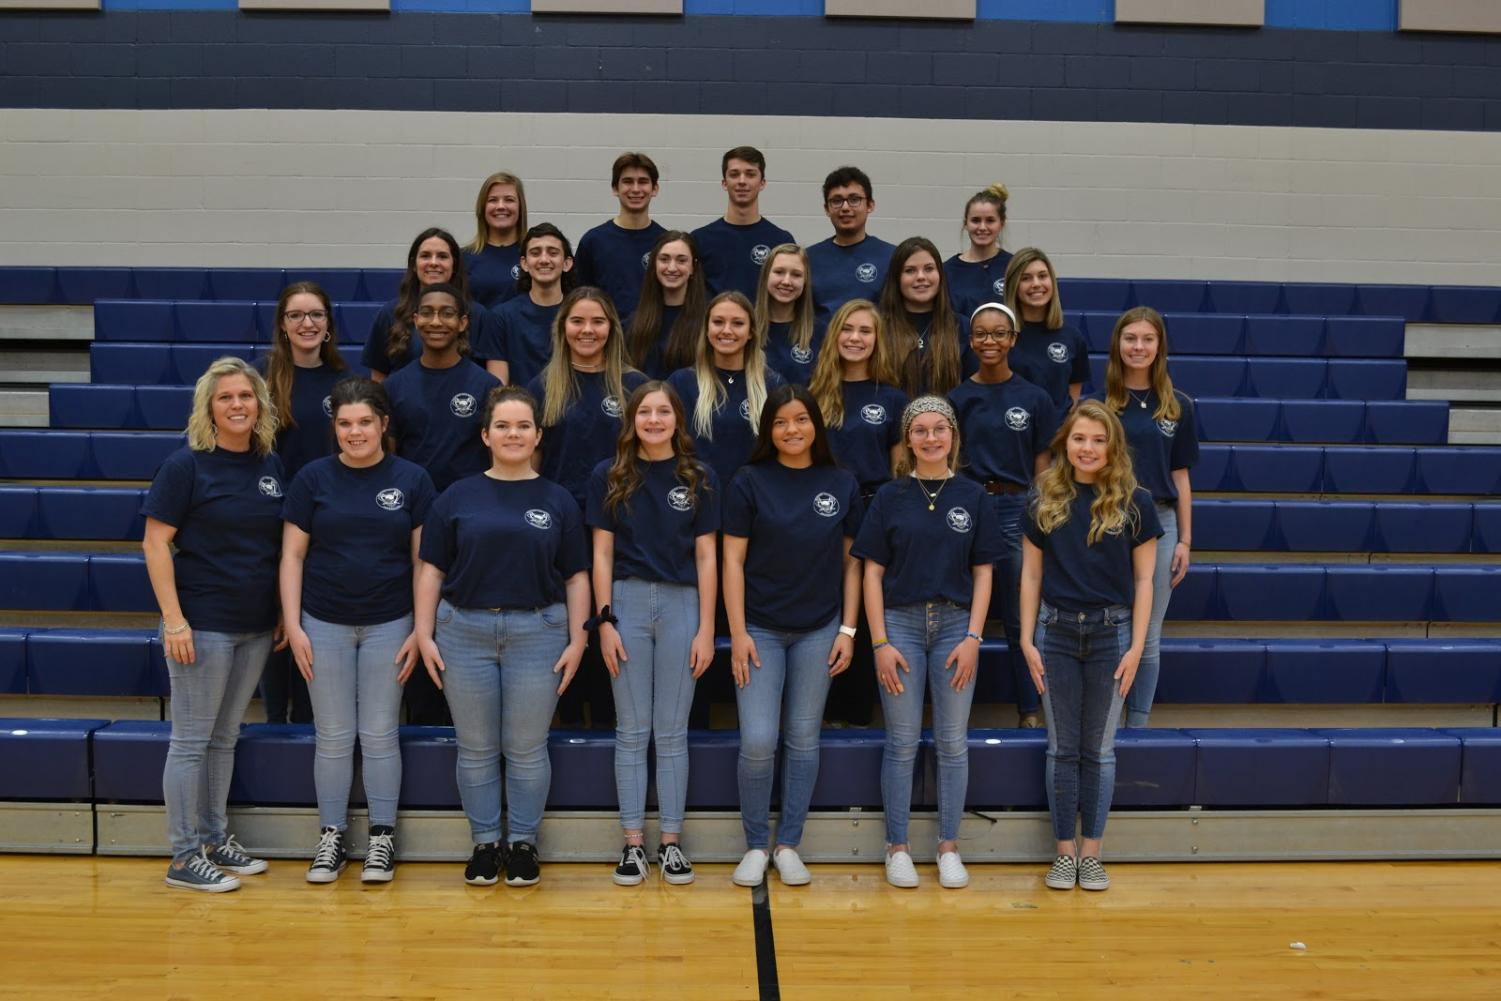 Shining stars // The yearbook staff of the 2019-2020 school year smiles for their club photo. Their Peak-themed yearbook earned the highest rating of Distinguished Merit.